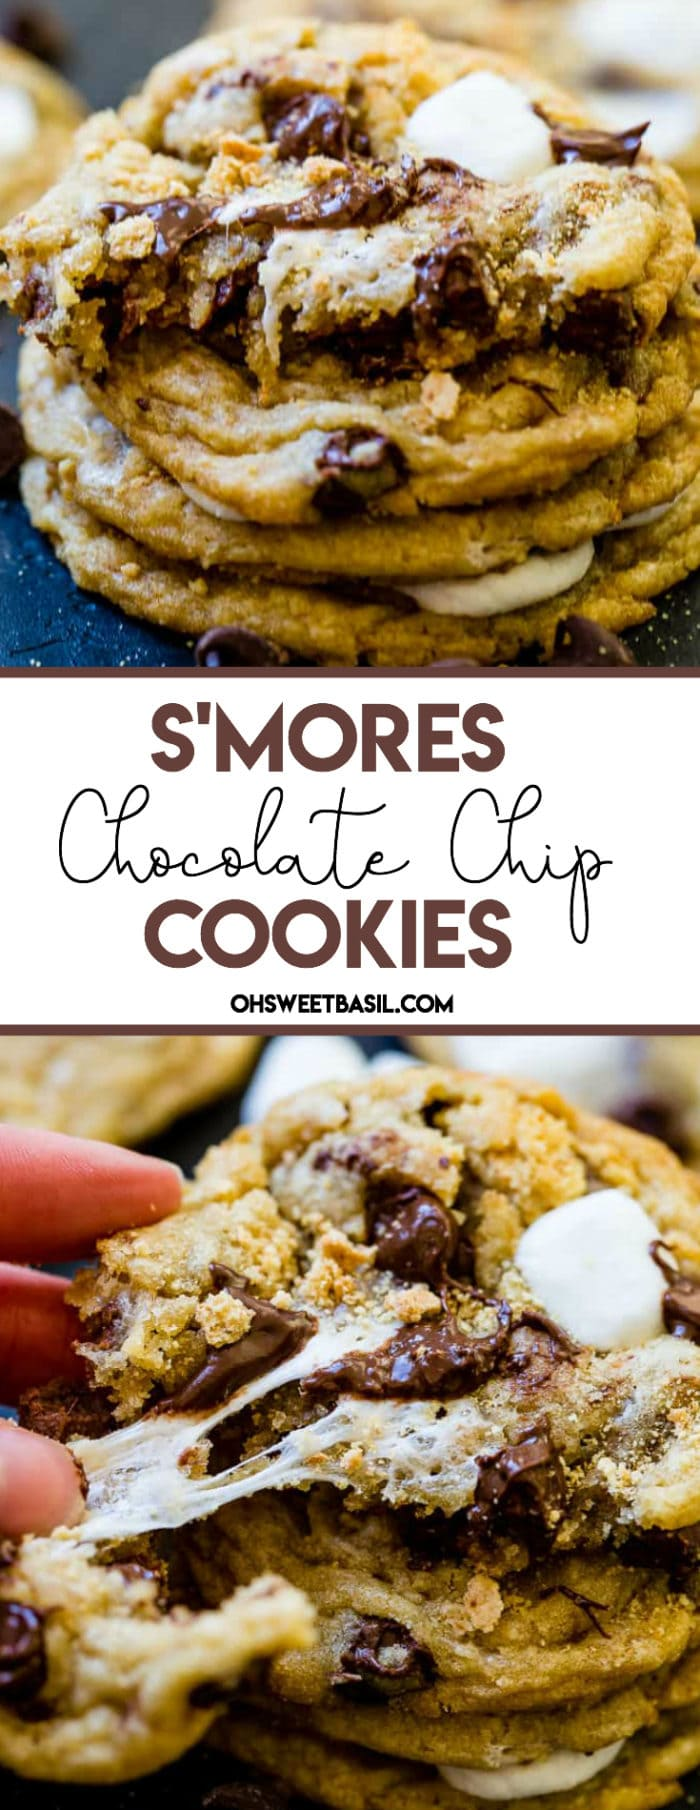 A black background with a stack of s'mores chocolate chip cookies